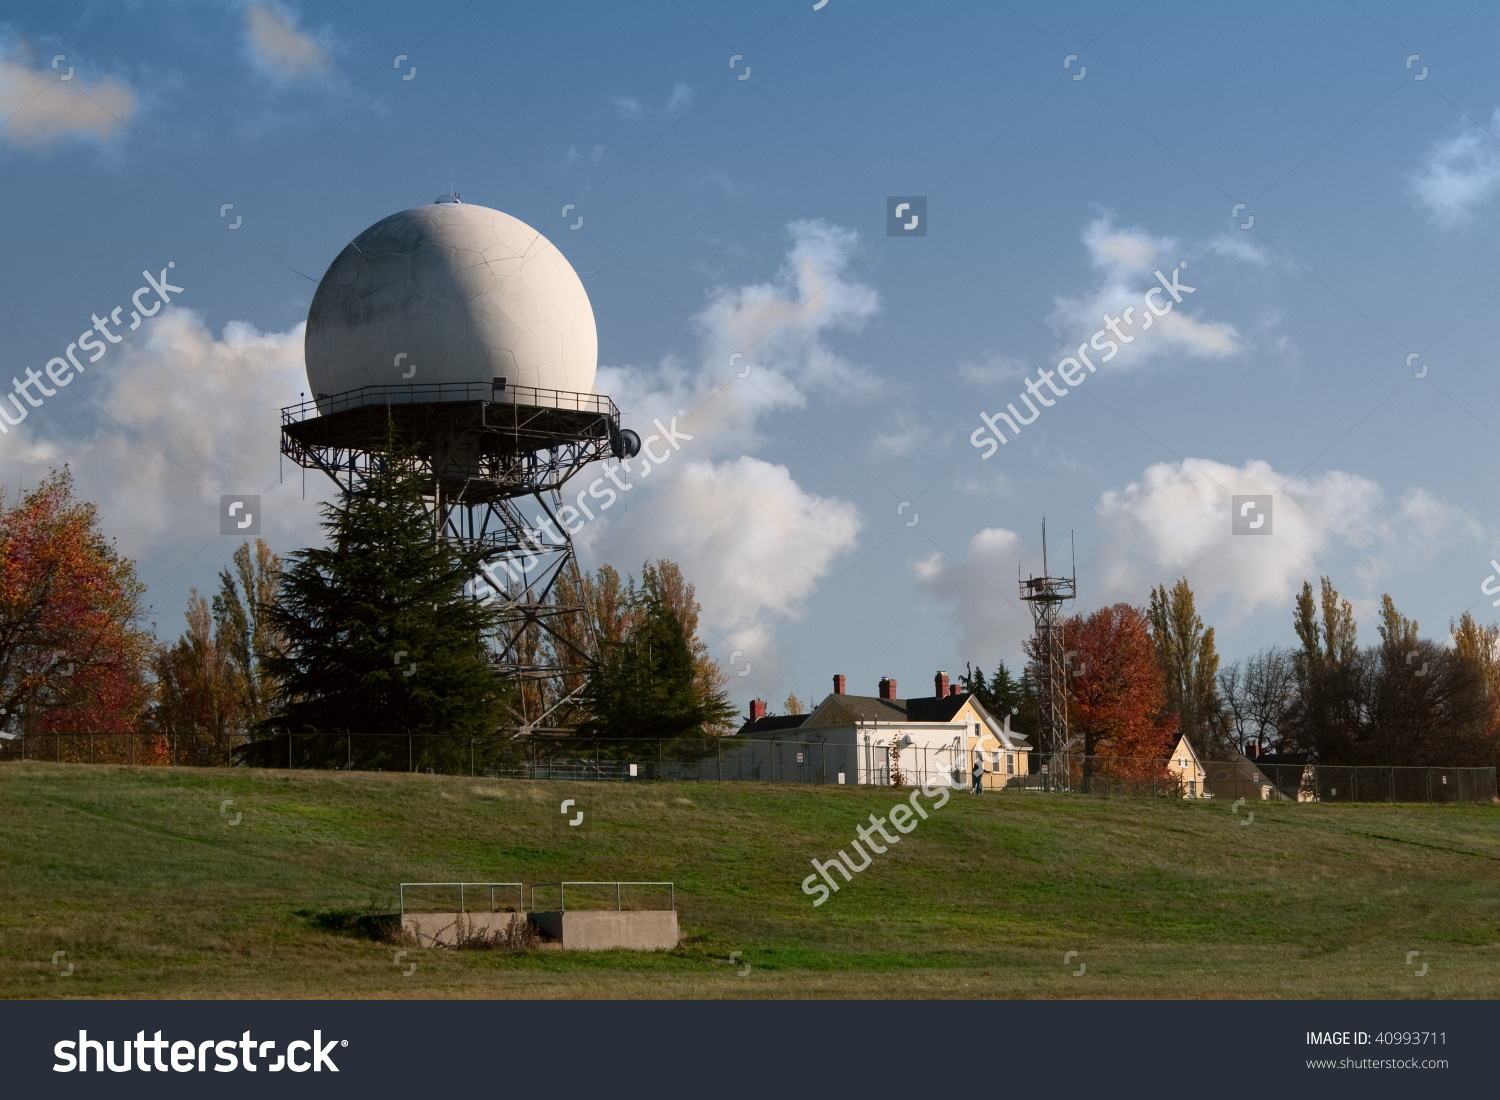 An Faa Radar Dome, Built In 1959, At Fort Lawton, A Closed United.